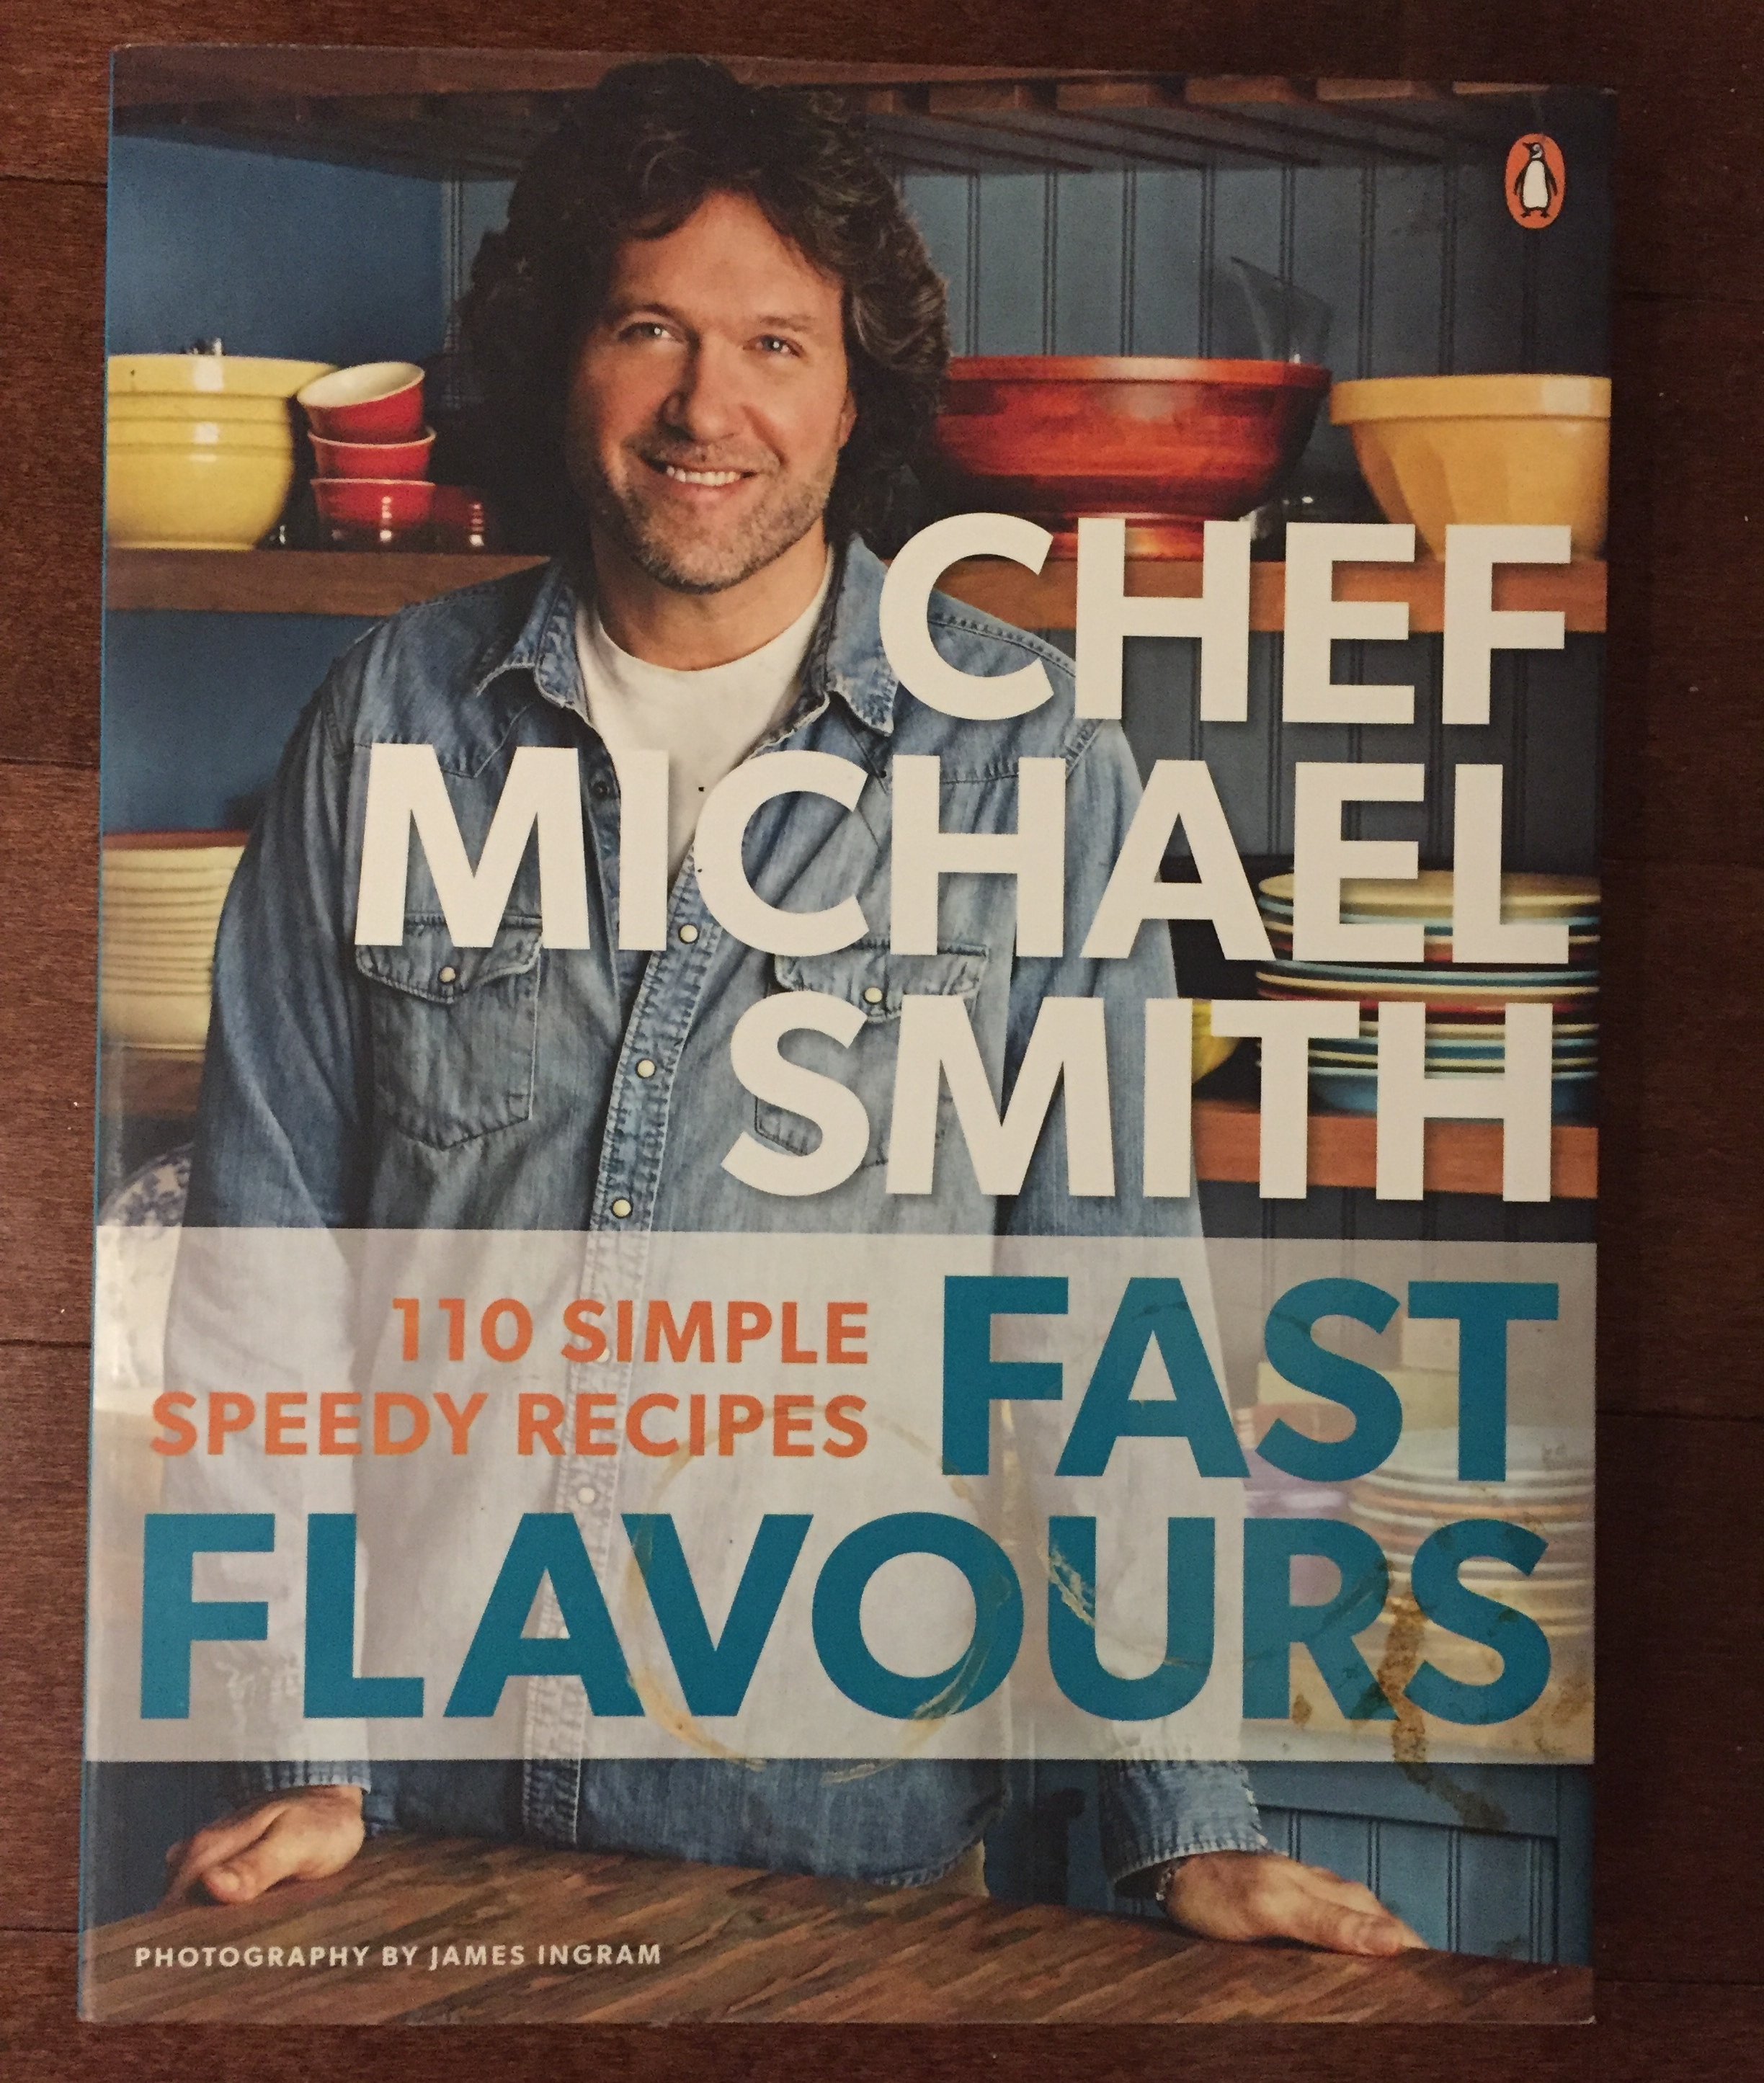 Fast Flavours. This is a great cookbook for everyday. Simple recipes that are easy for anyone to make. Variations on the classics and generally the stuff you're craving on the daily. I have loved every recipe I've made from this book.